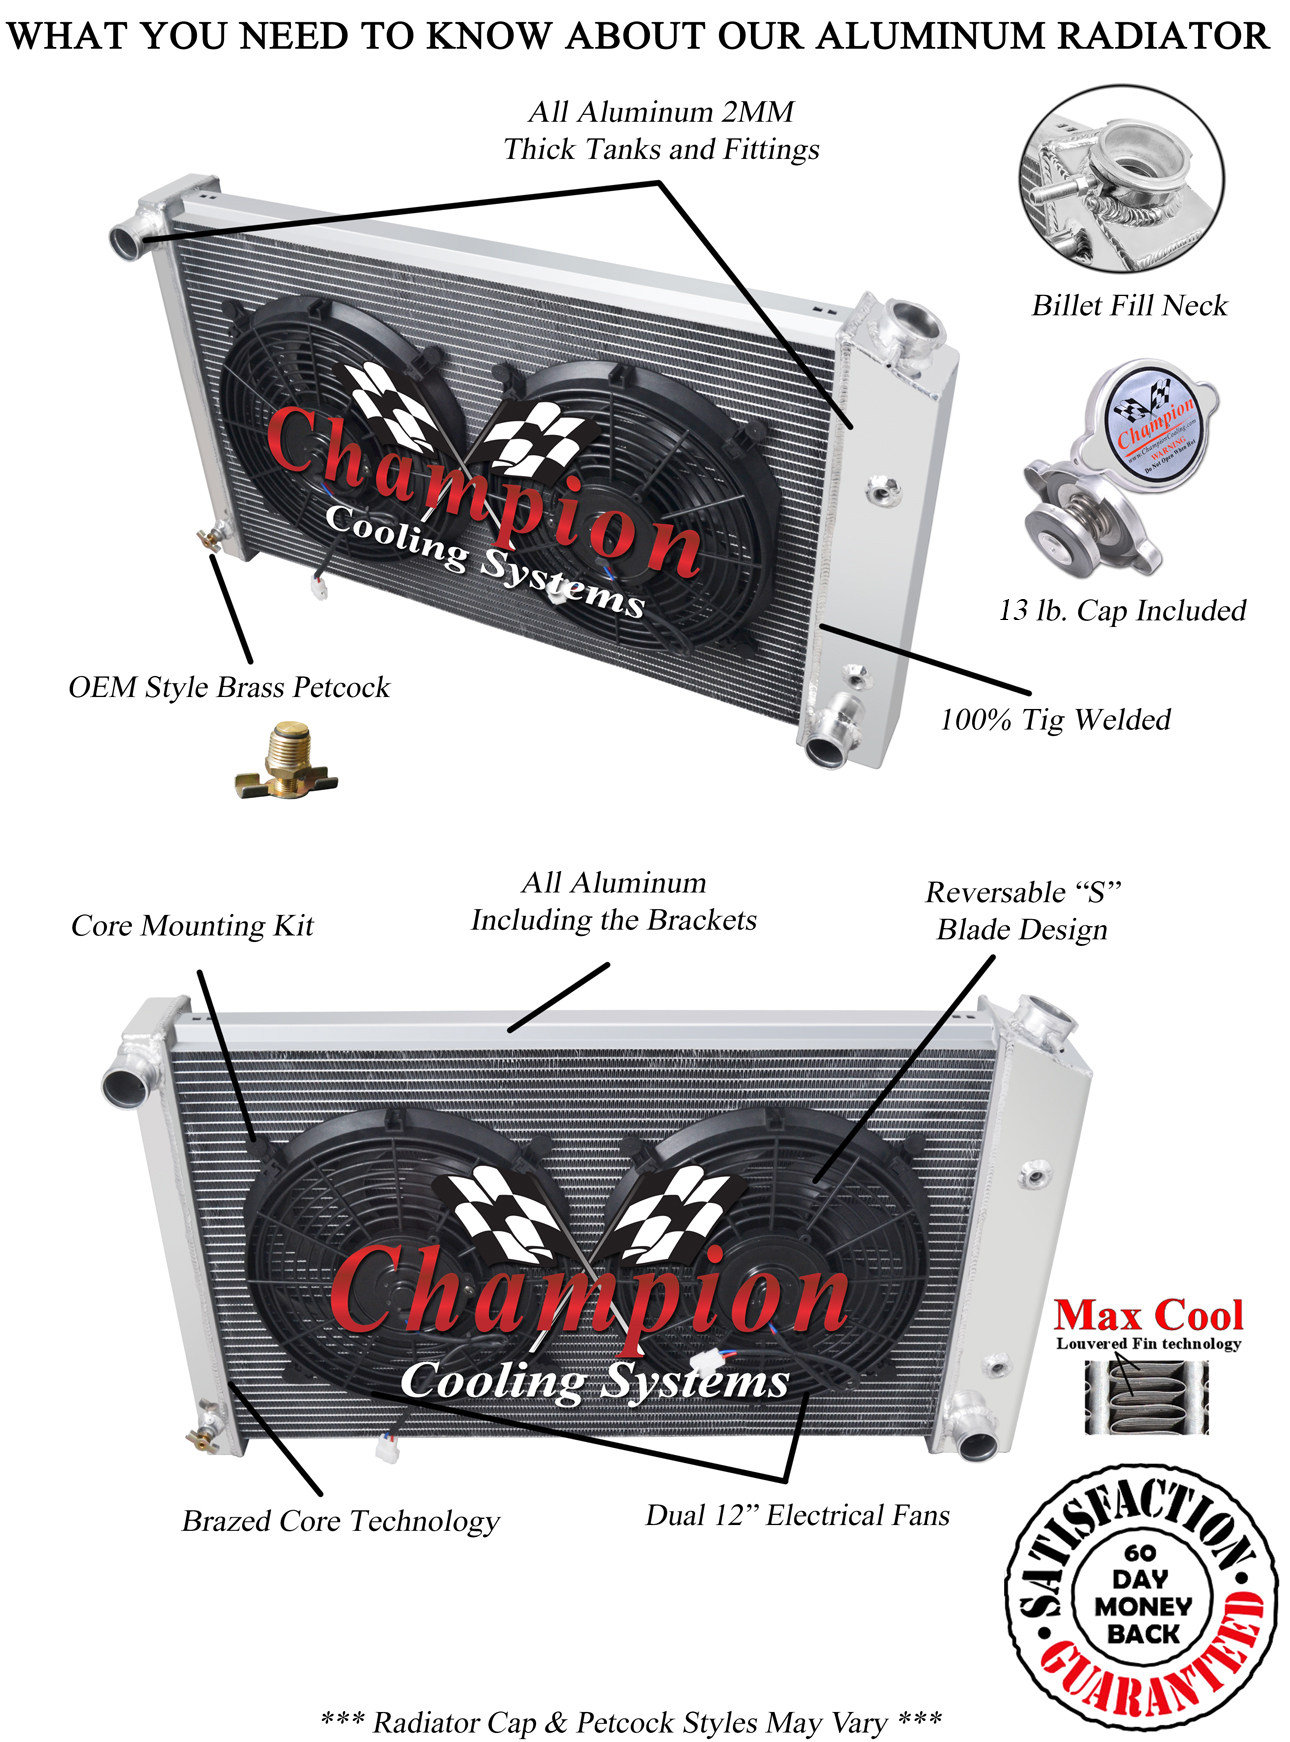 https://www.championcooling.com/photos/Photos%20White/With%20Fans/Combos/477/477_2f_d_w_12.jpg